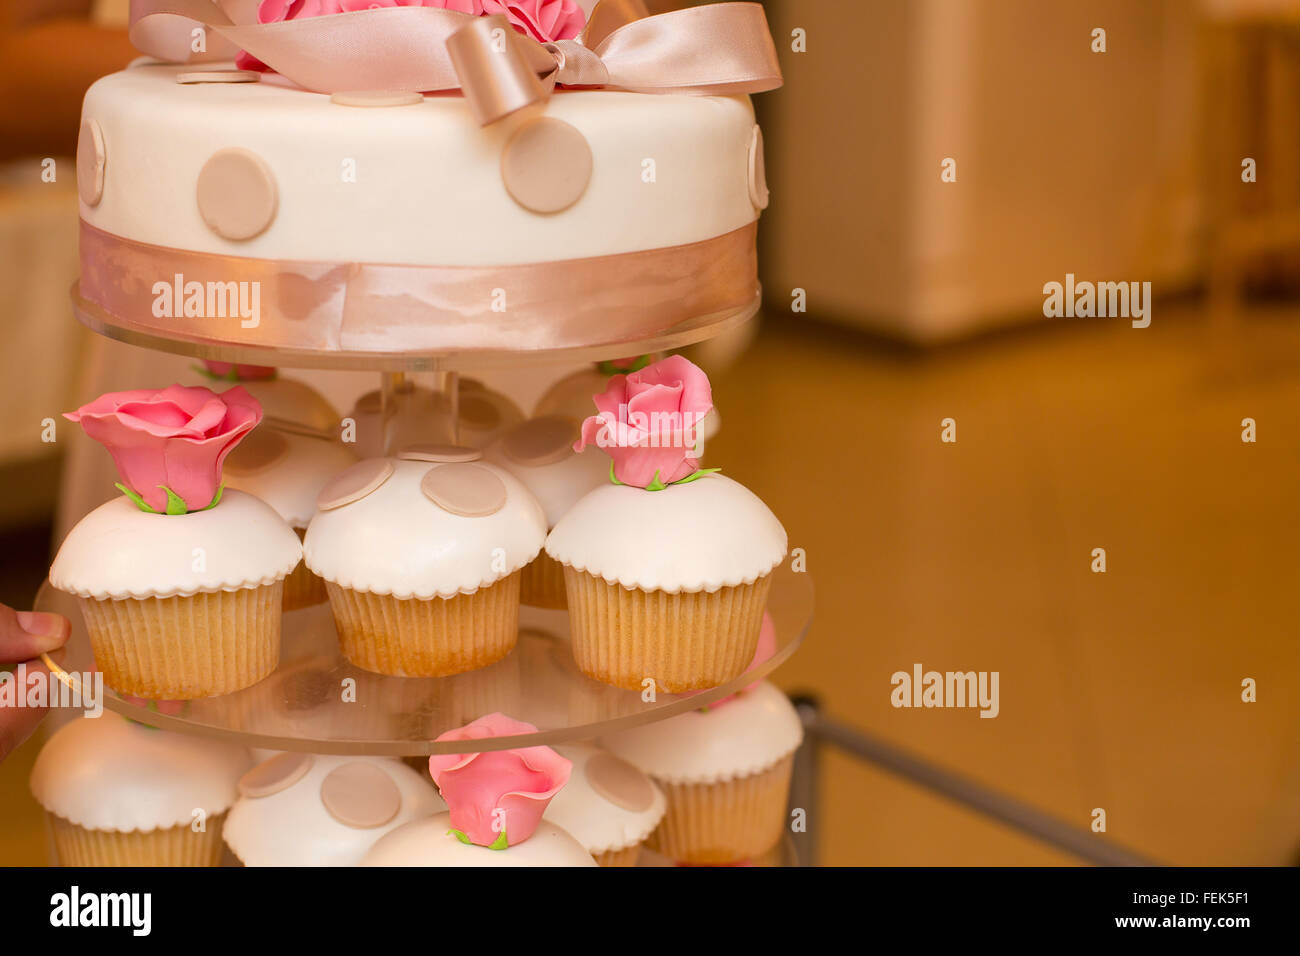 White wedding cake and pink flowers and cupcakes stock photo white wedding cake and pink flowers and cupcakes mightylinksfo Image collections